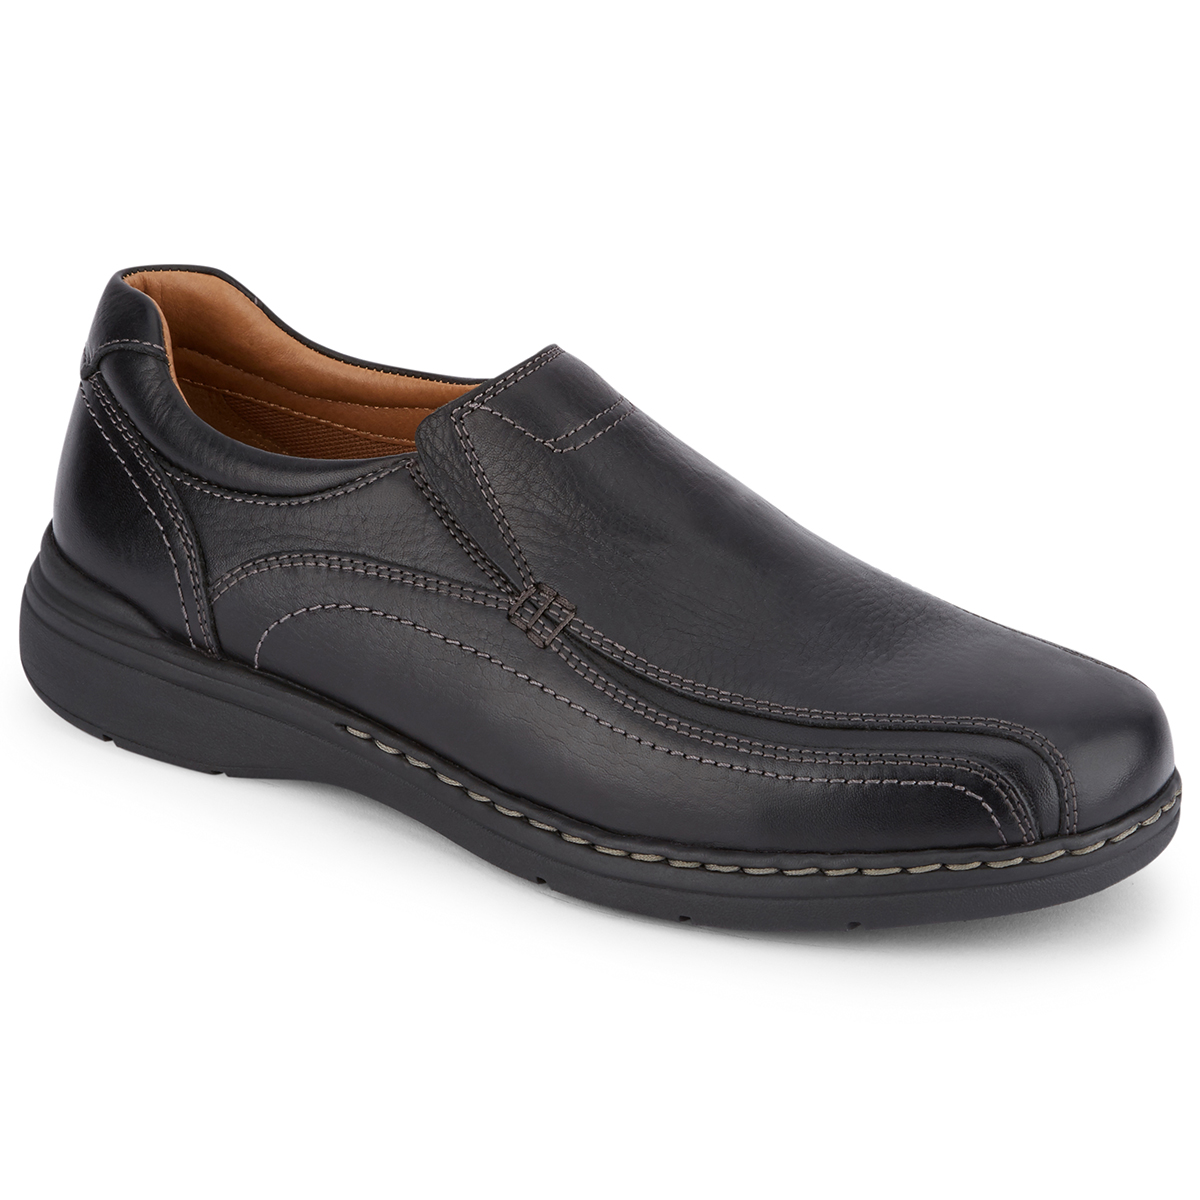 Dockers Men's Mosley Slip-On Shoe - Black, 8